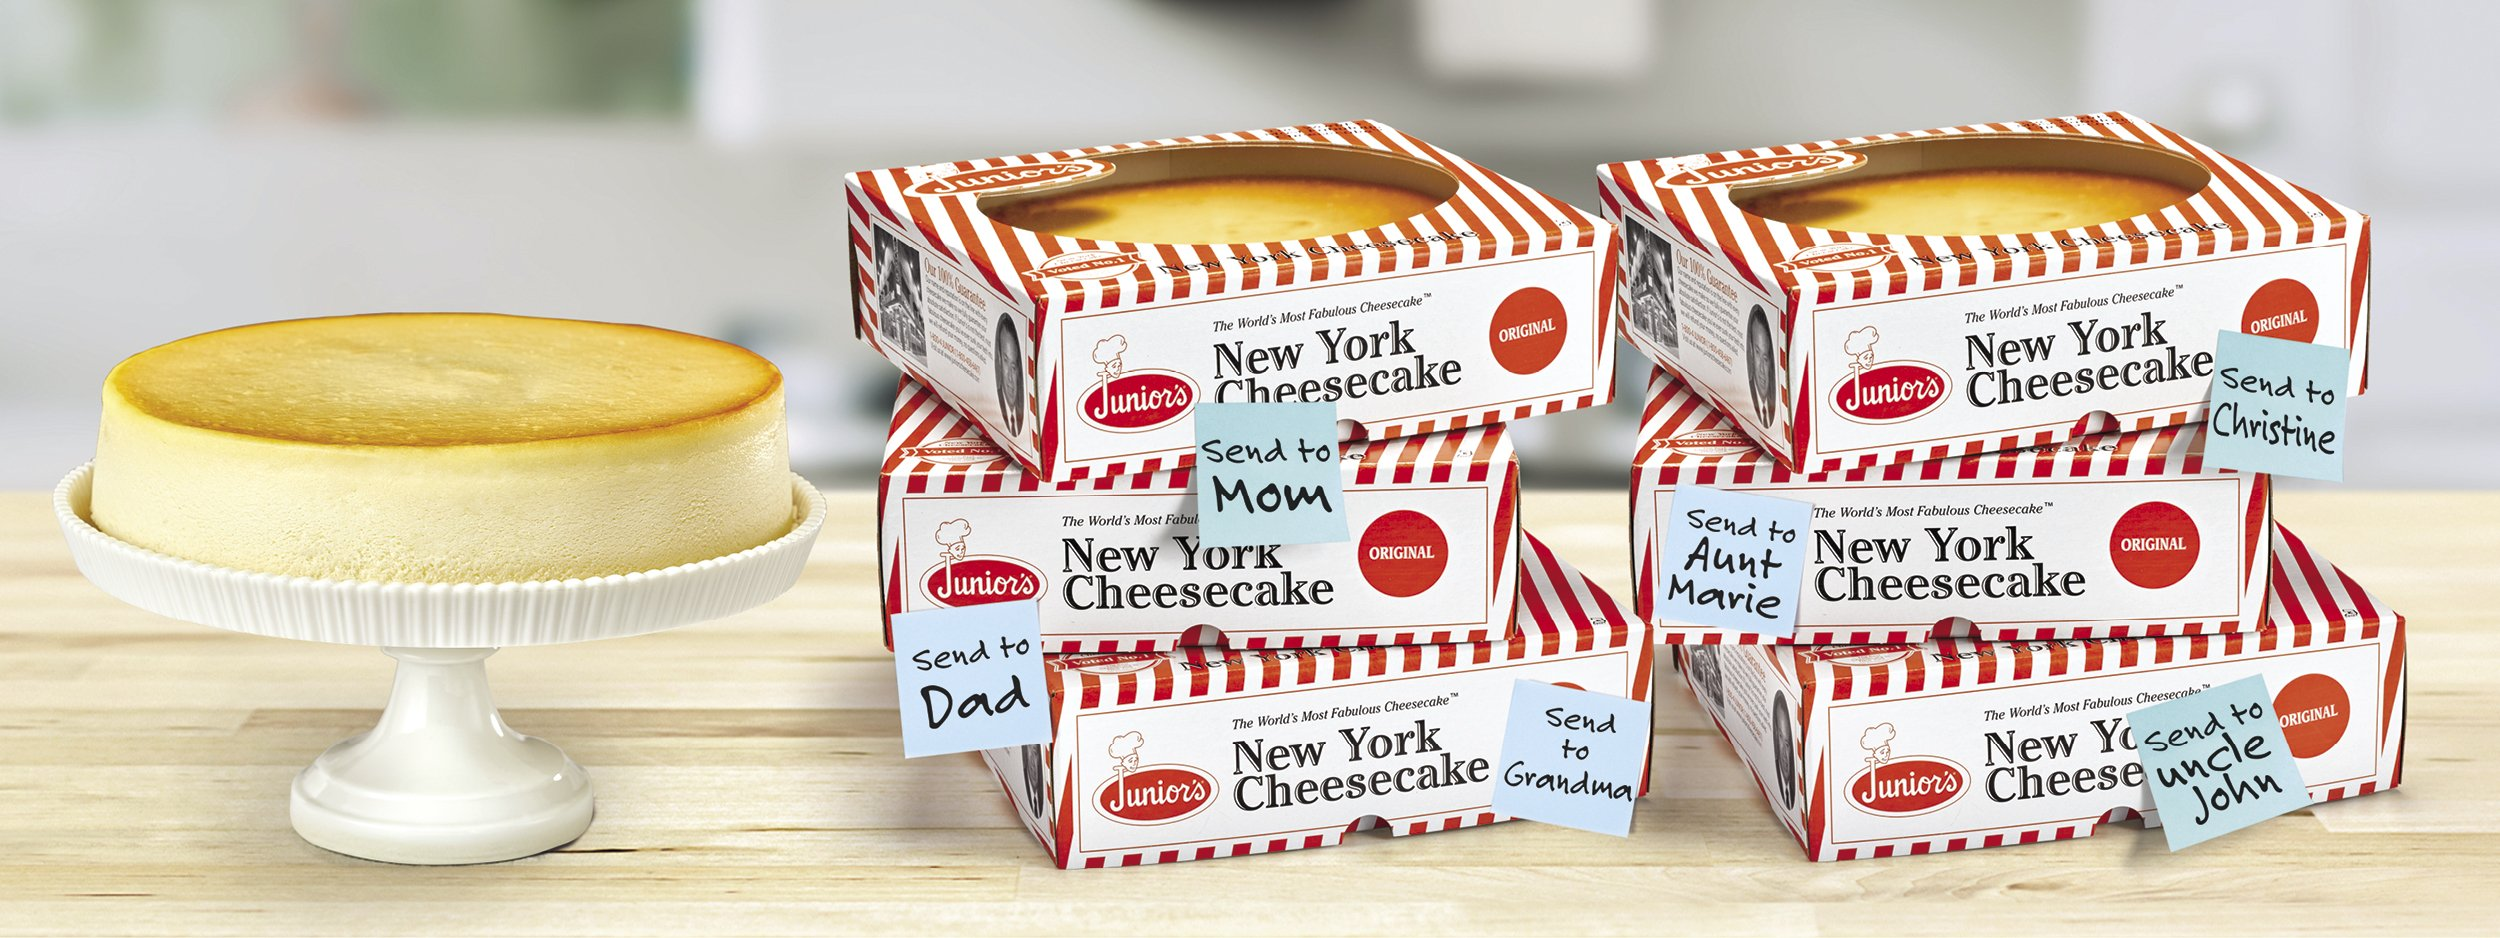 Win Free Cheesecakes